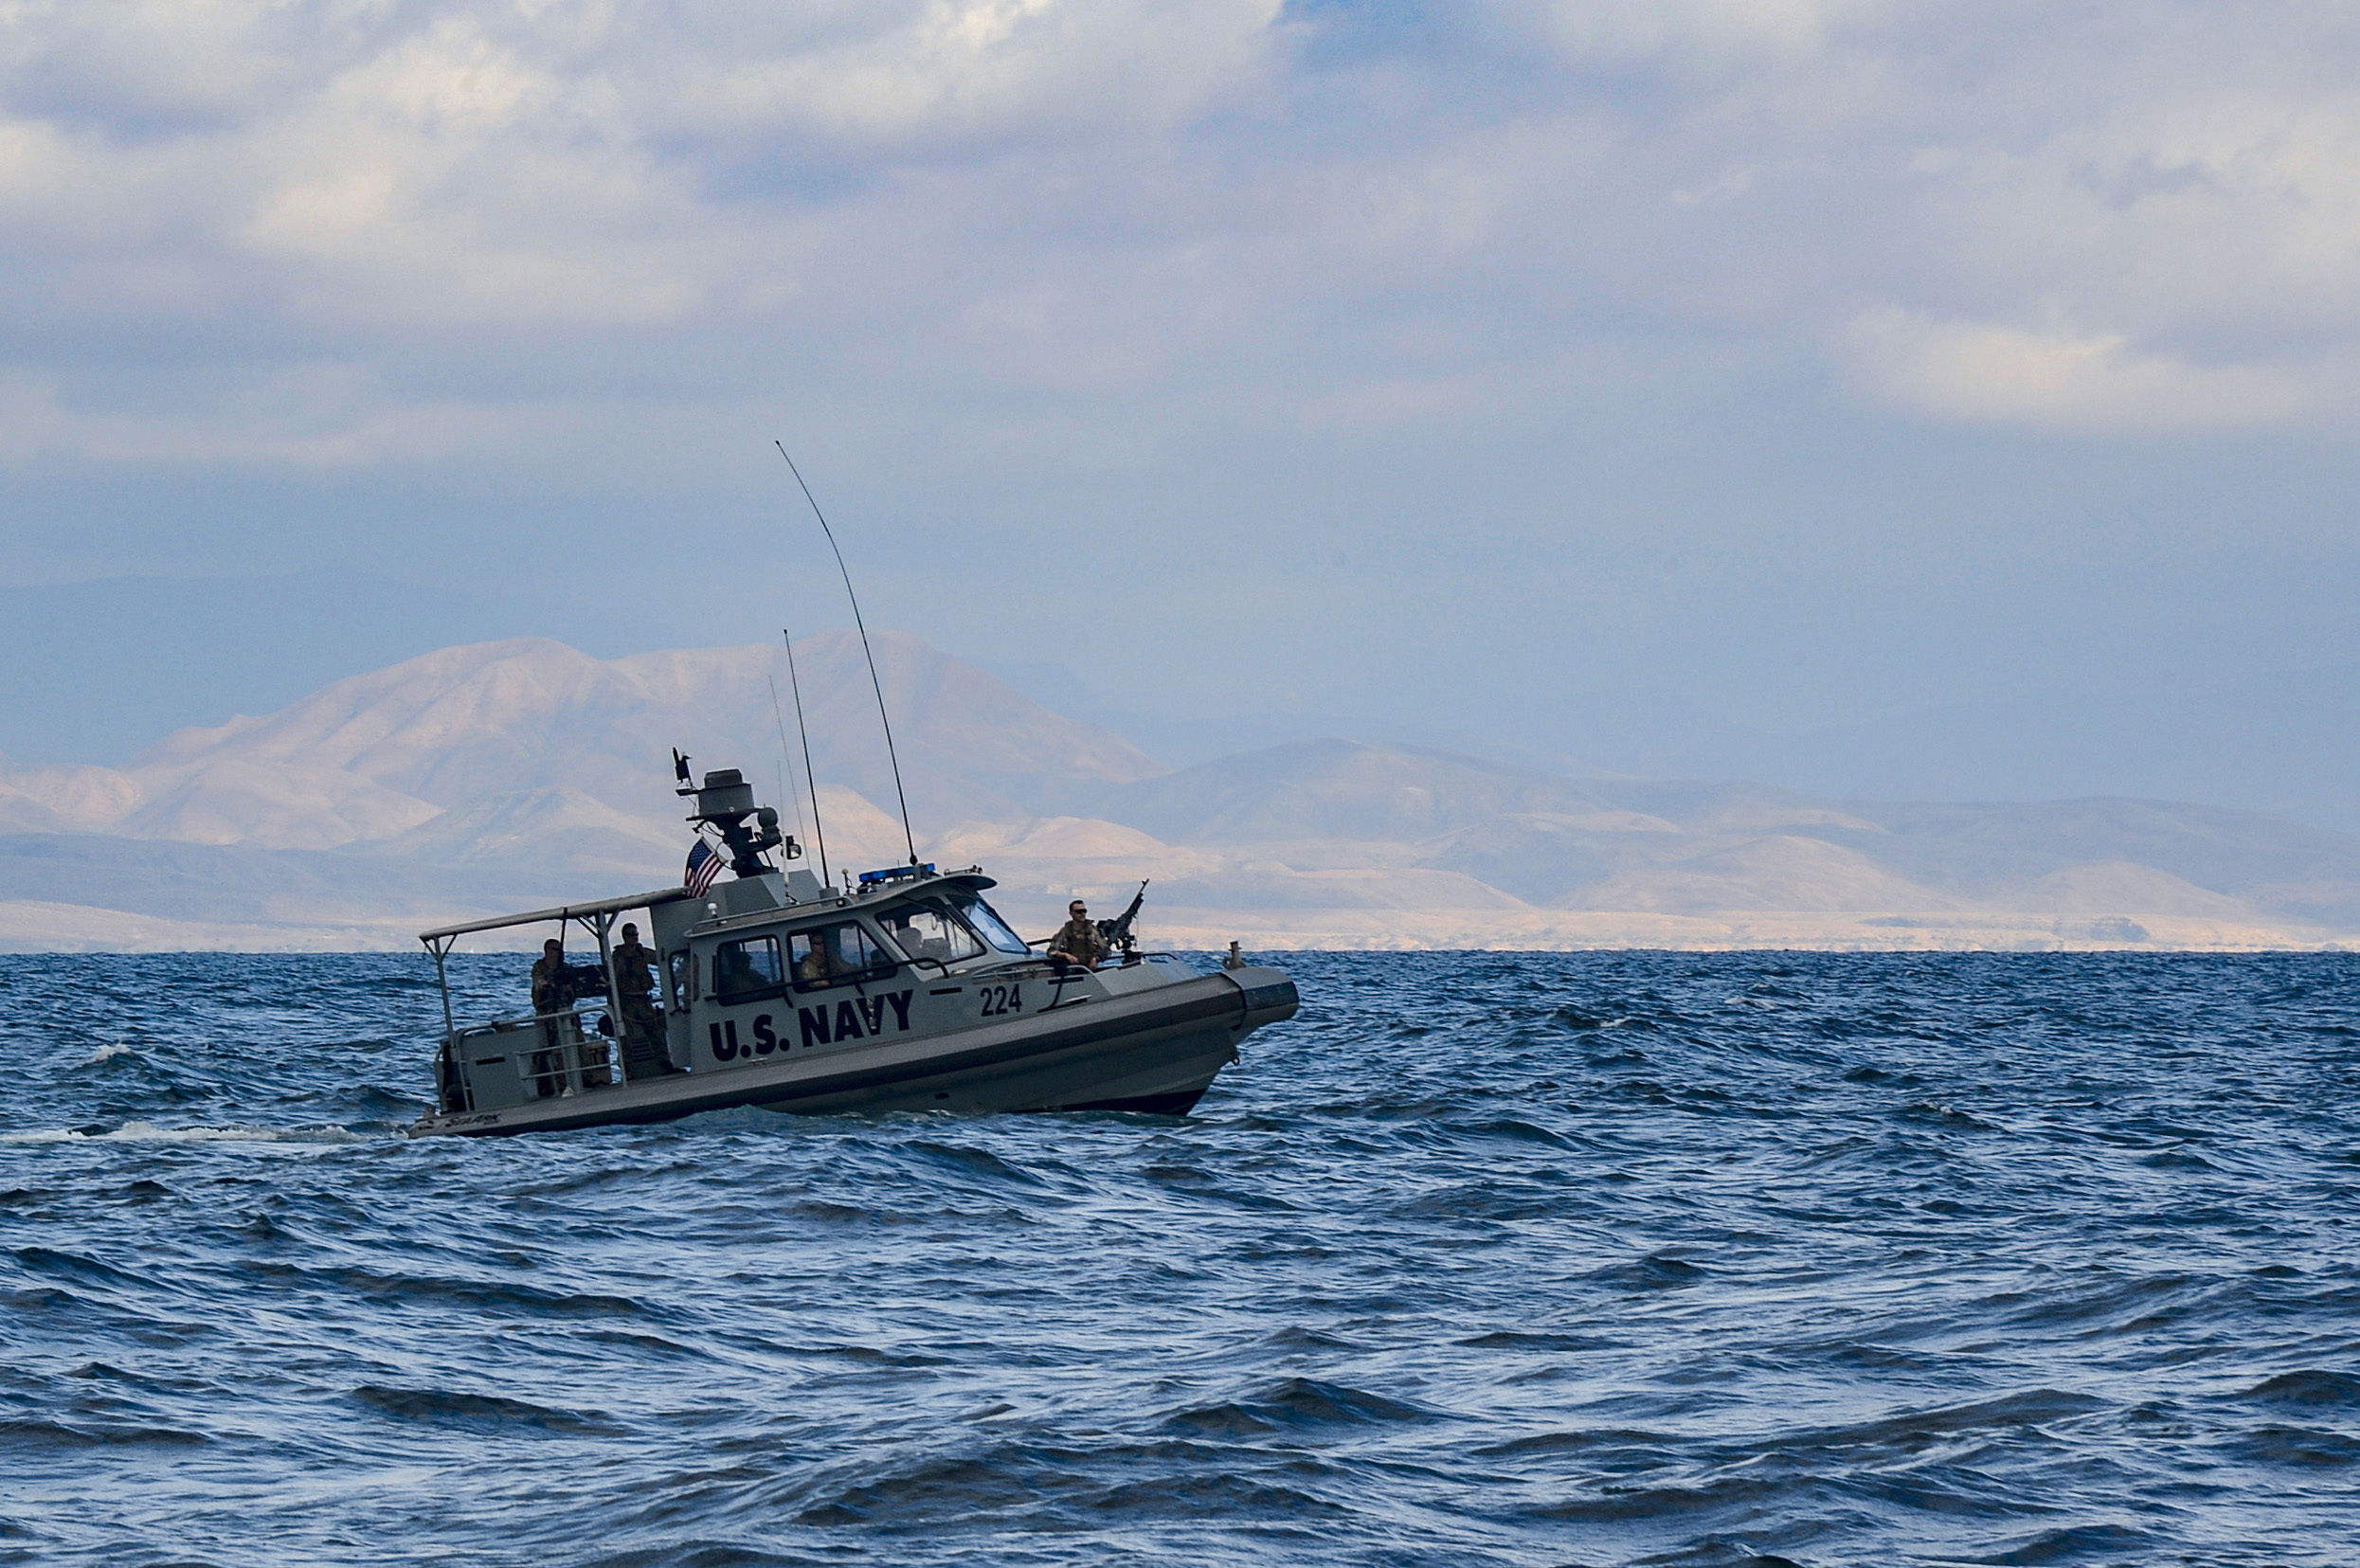 A U.S. Navy tactical patrol boat, assigned to Task Group 68.6 (TG-68.6) from Camp Lemonnier, transits the Gulf of Tadjoura, Nov. 15, 2018. TG-68.6 is forward deployed to the U.S. 6th Fleet area of operations and conducts joint naval operations, often in concert with allied and interagency partners, in order to advance U.S. national interests and security and stability in Europe and Africa. (U.S. Navy photo by Mass Communication Specialist 2nd Class Timothy M. Ahearn)